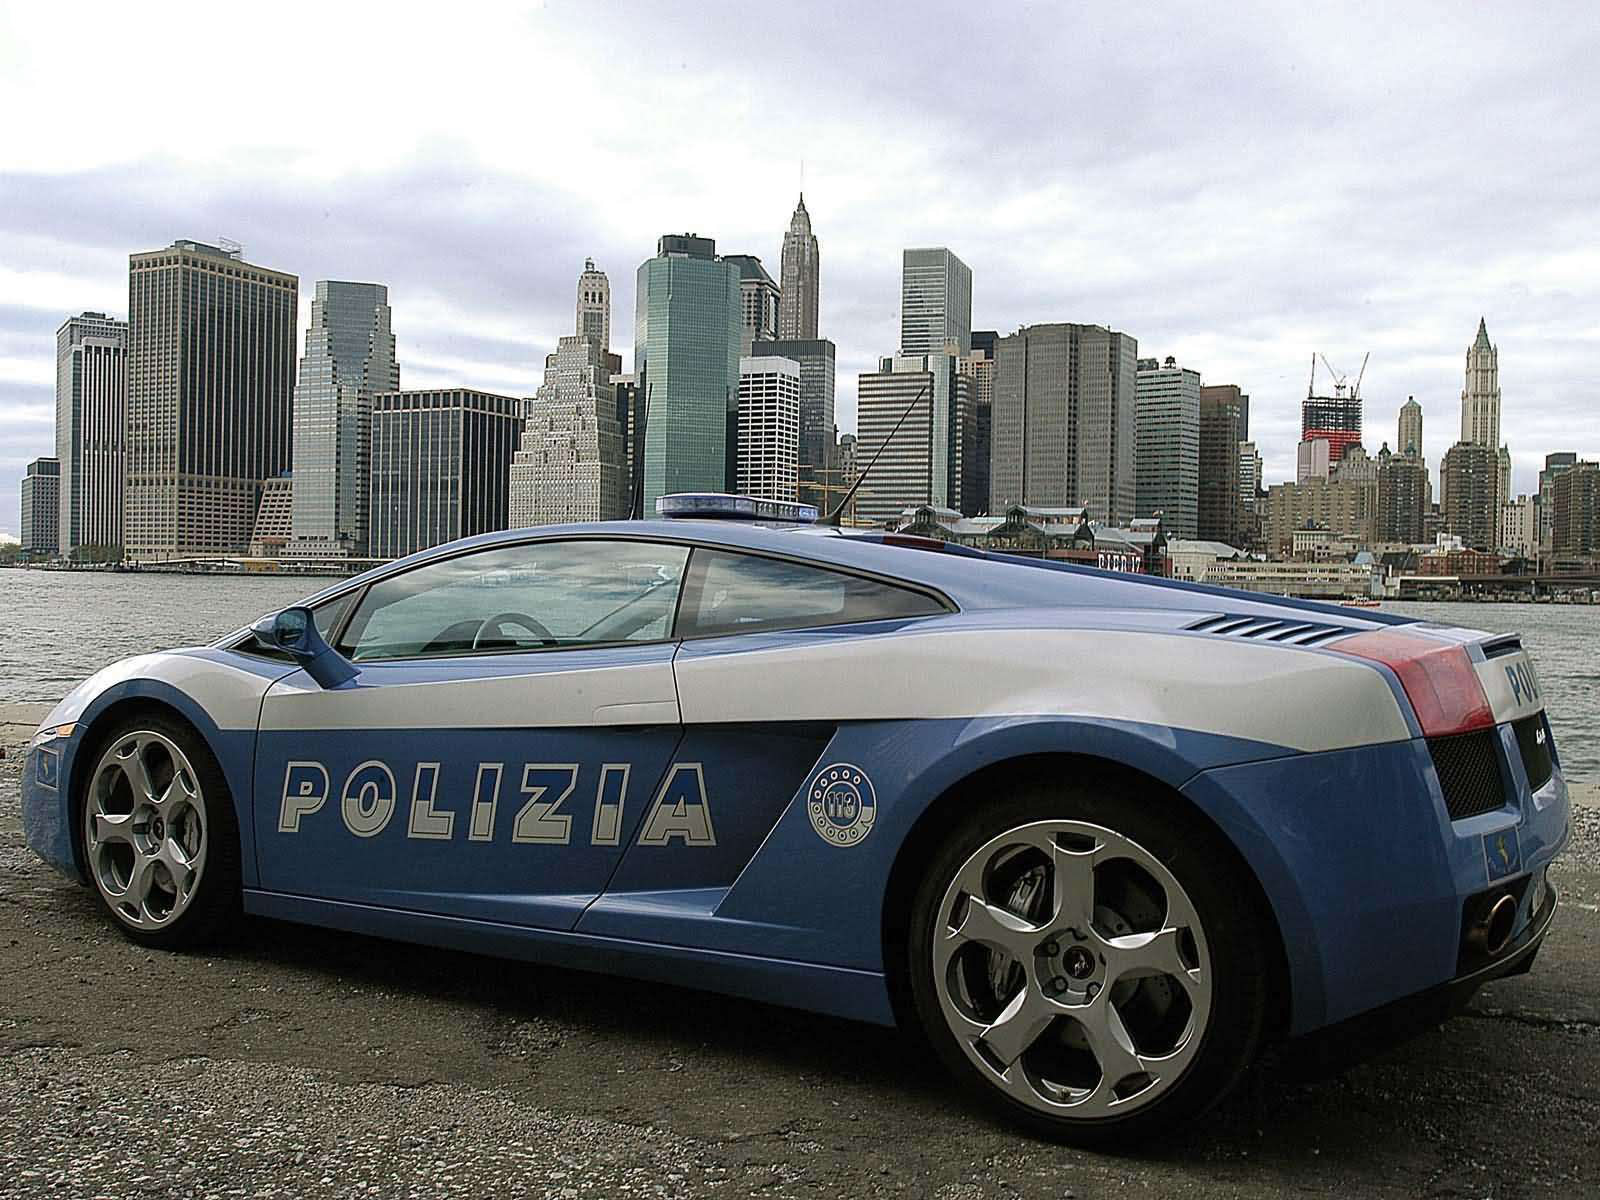 2017 Lamborghini Gallardo Police Car photo - 3